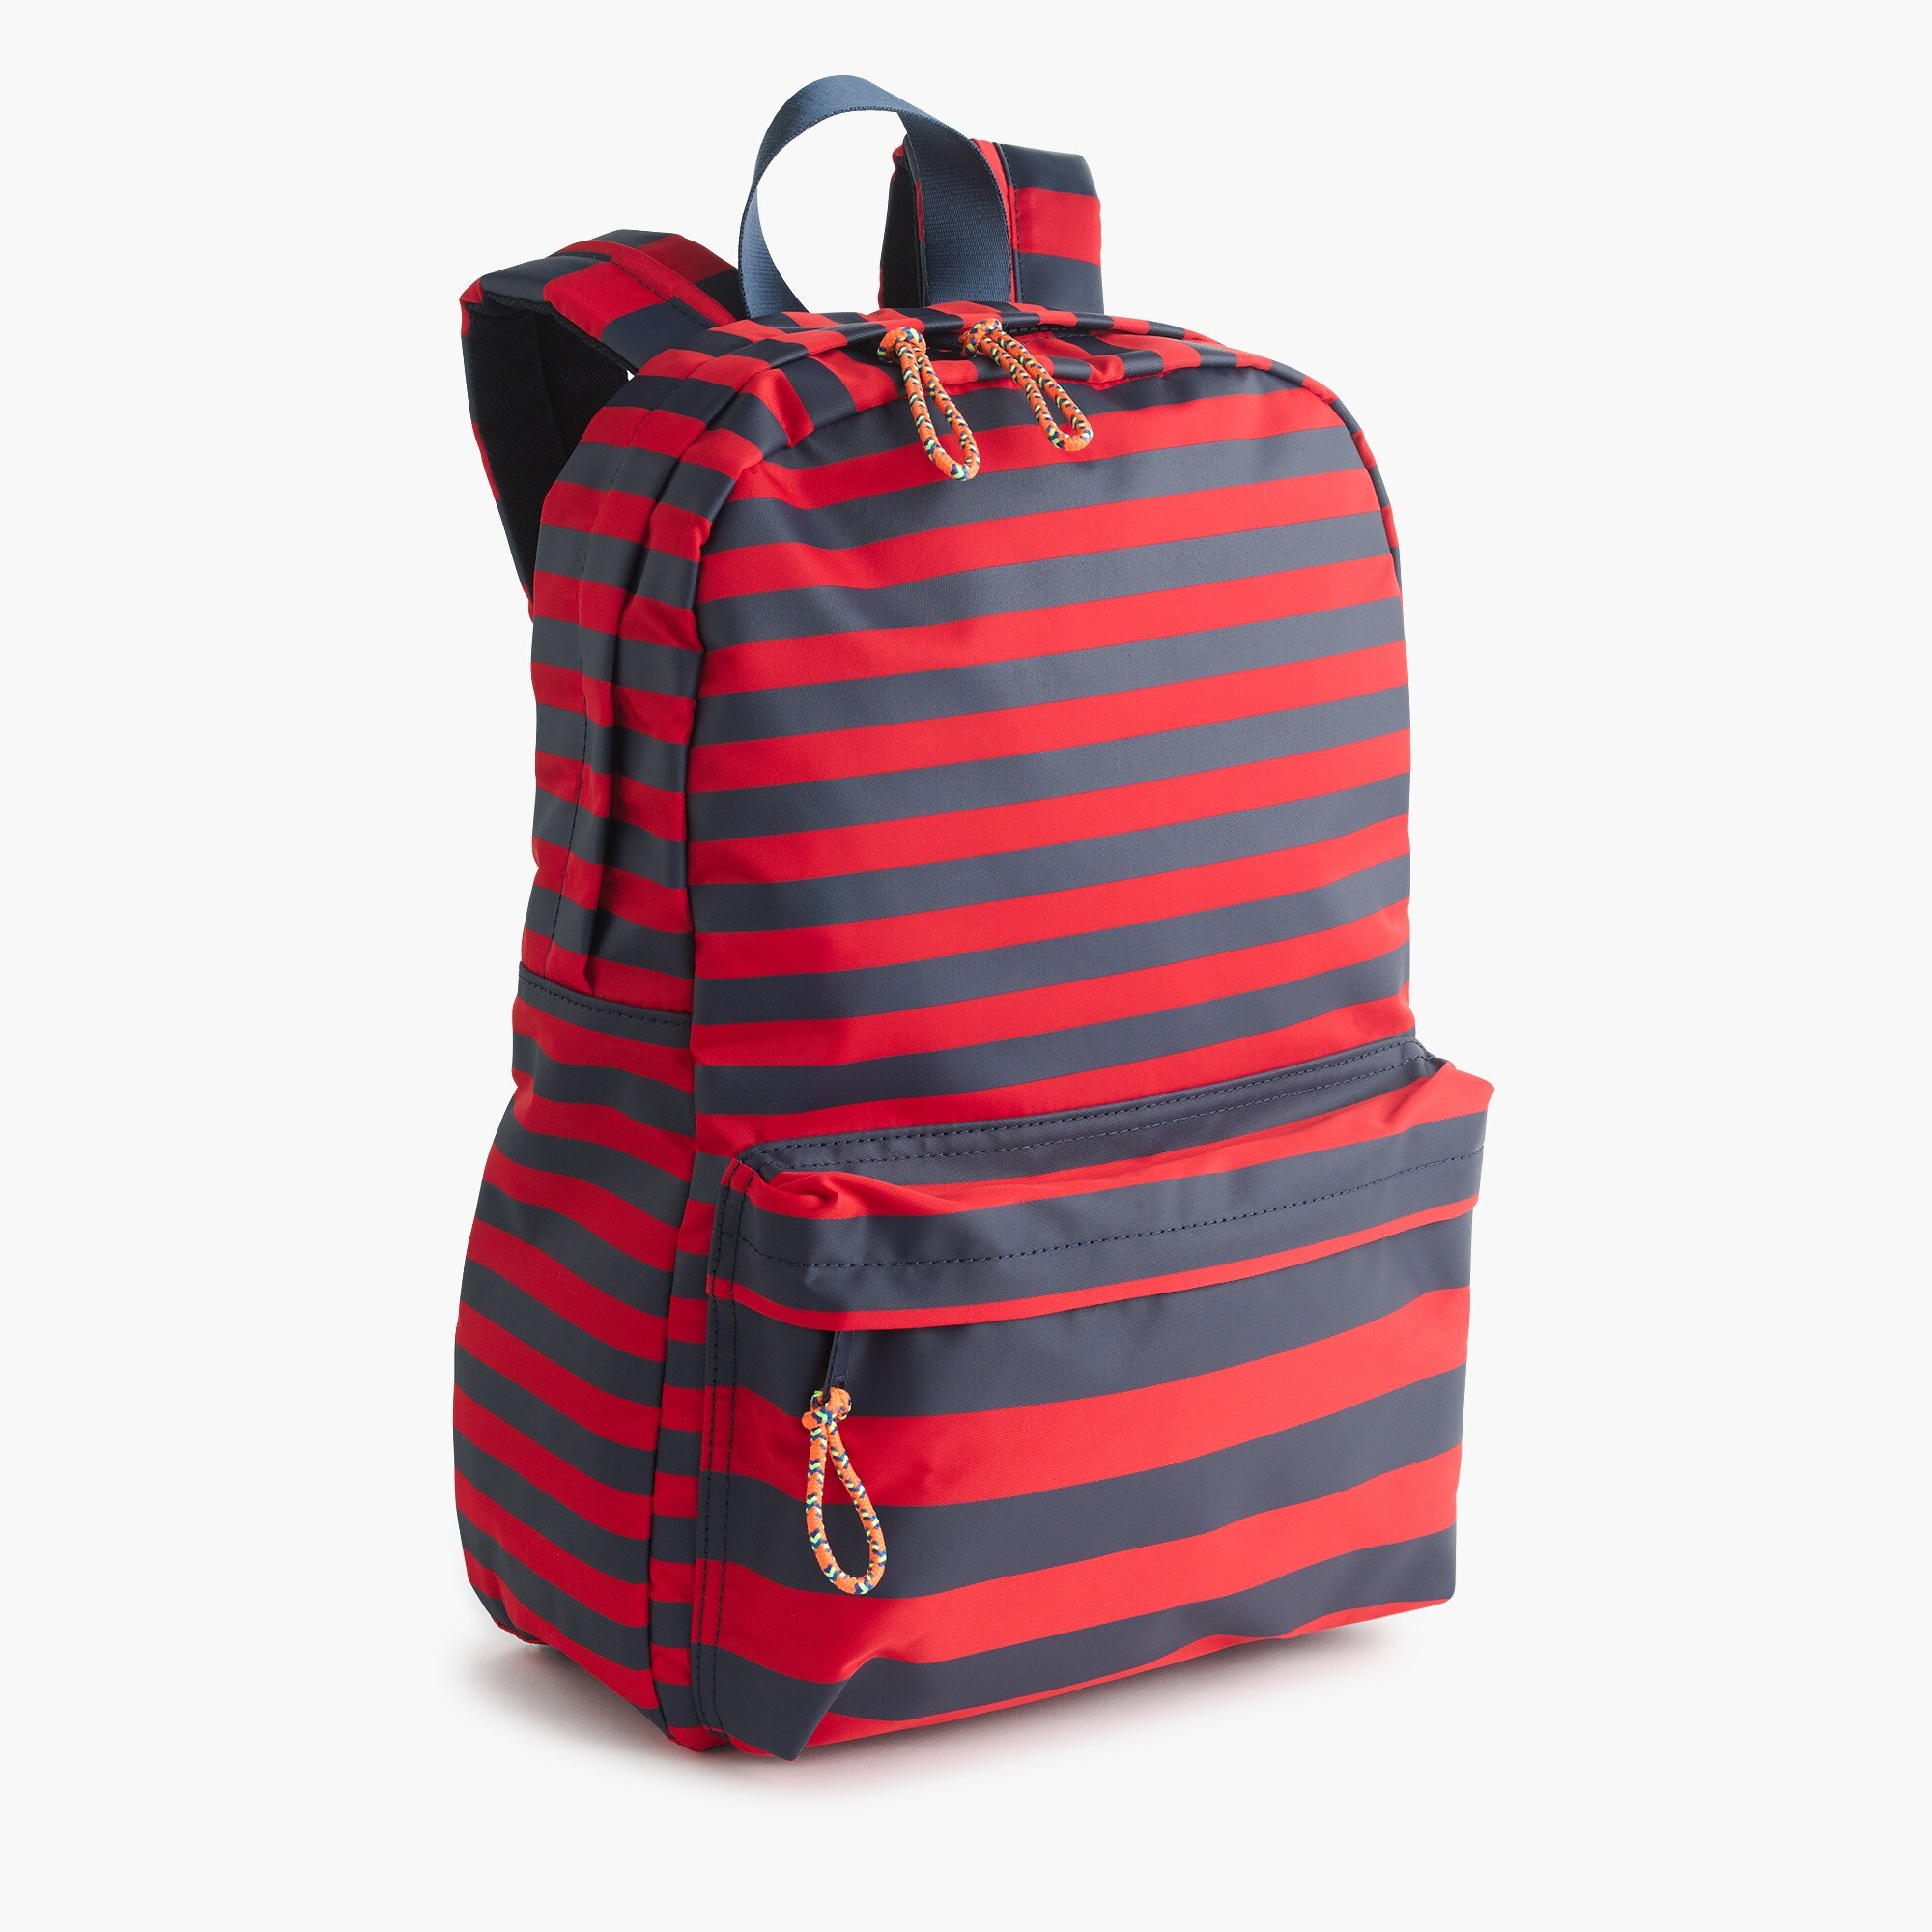 Kids' striped backpack